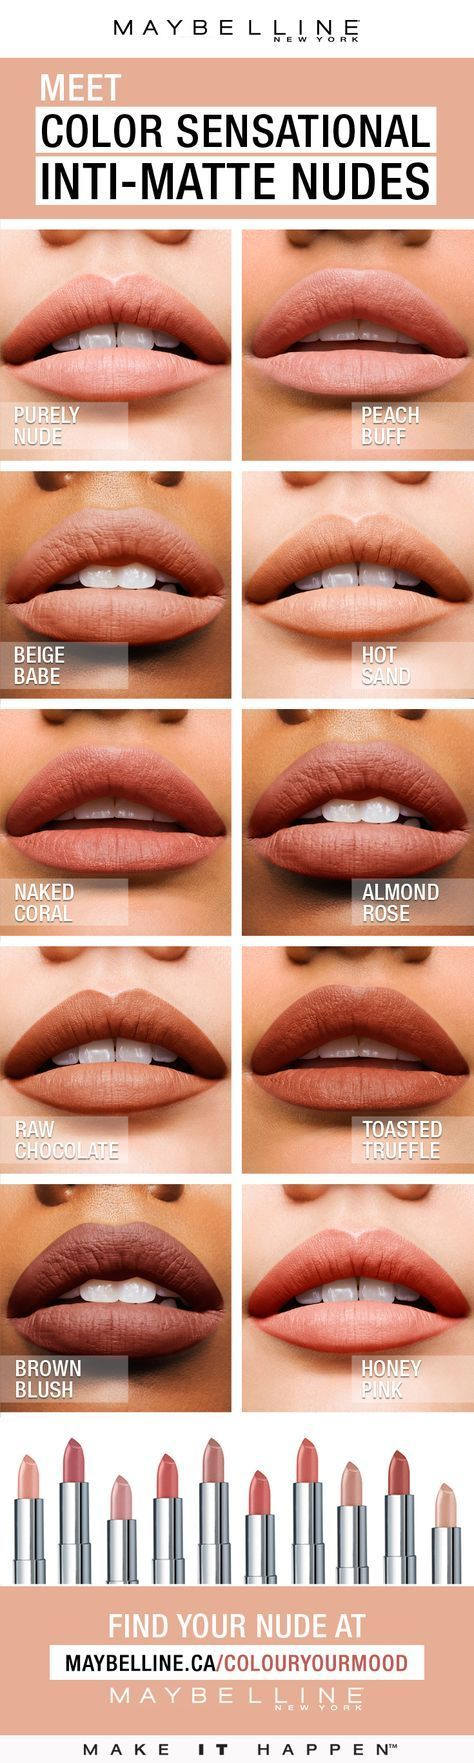 Color Sensational® Inti-Matte Nude lipstick features warm, golden pigments that enrich your natural lip colour. Warmer, more sensational nudes for every skin tone. Pucker up to radiant, confident colour that highlights one's natural beauty. #lipsticklipcolors